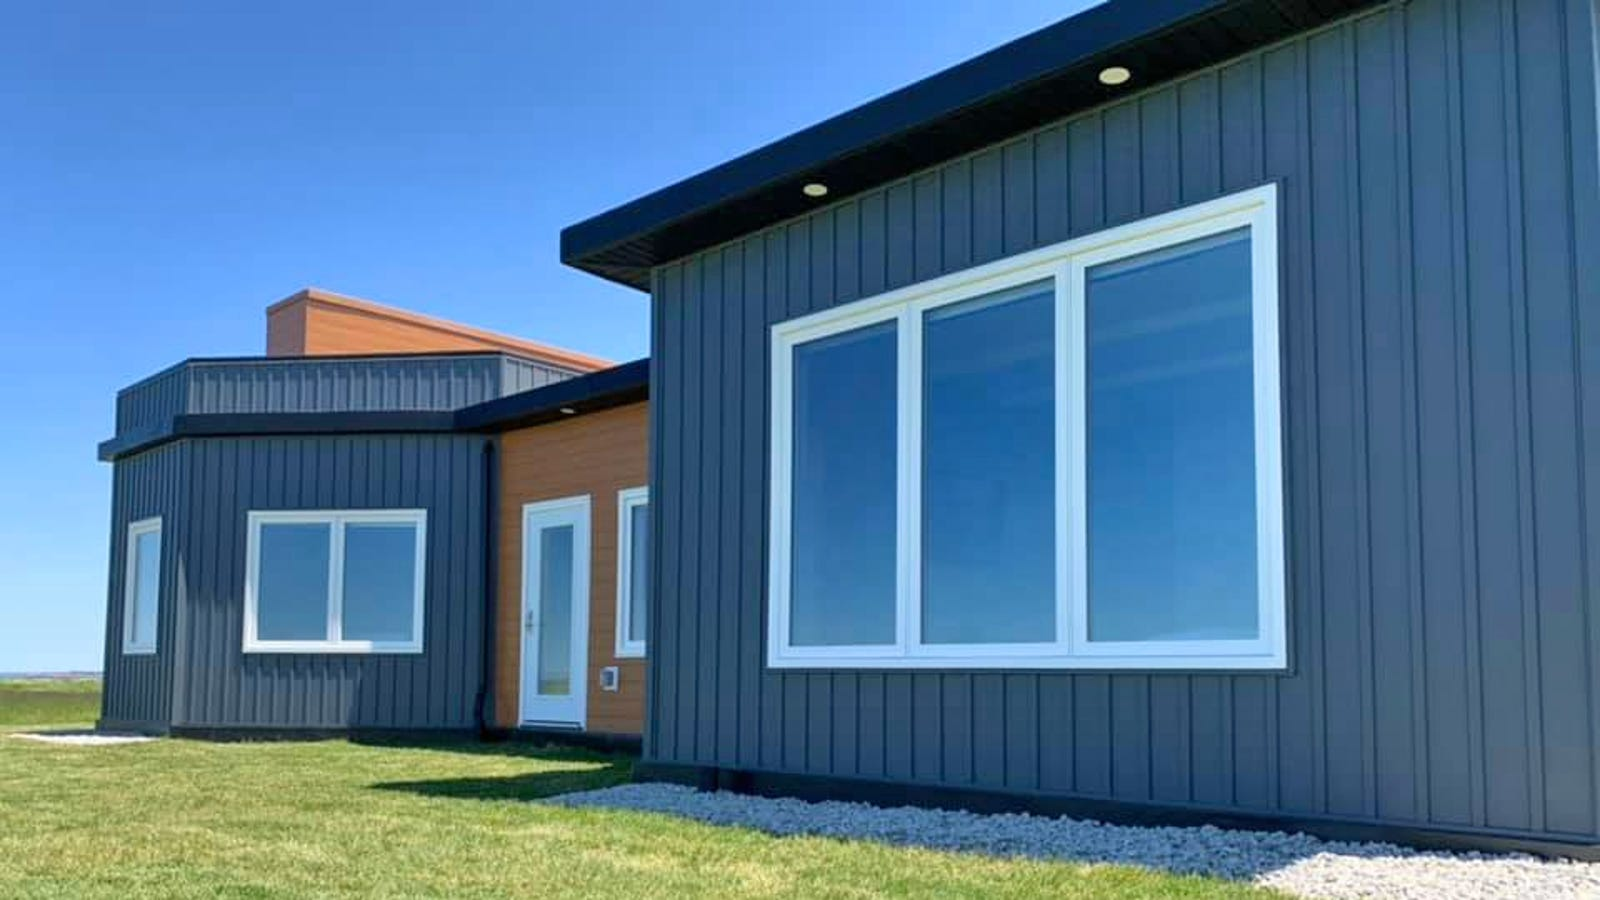 This Hurricane Proof House Made From 612,000 Recycled Plastic Bottles Can Withstand 326 MPH Winds